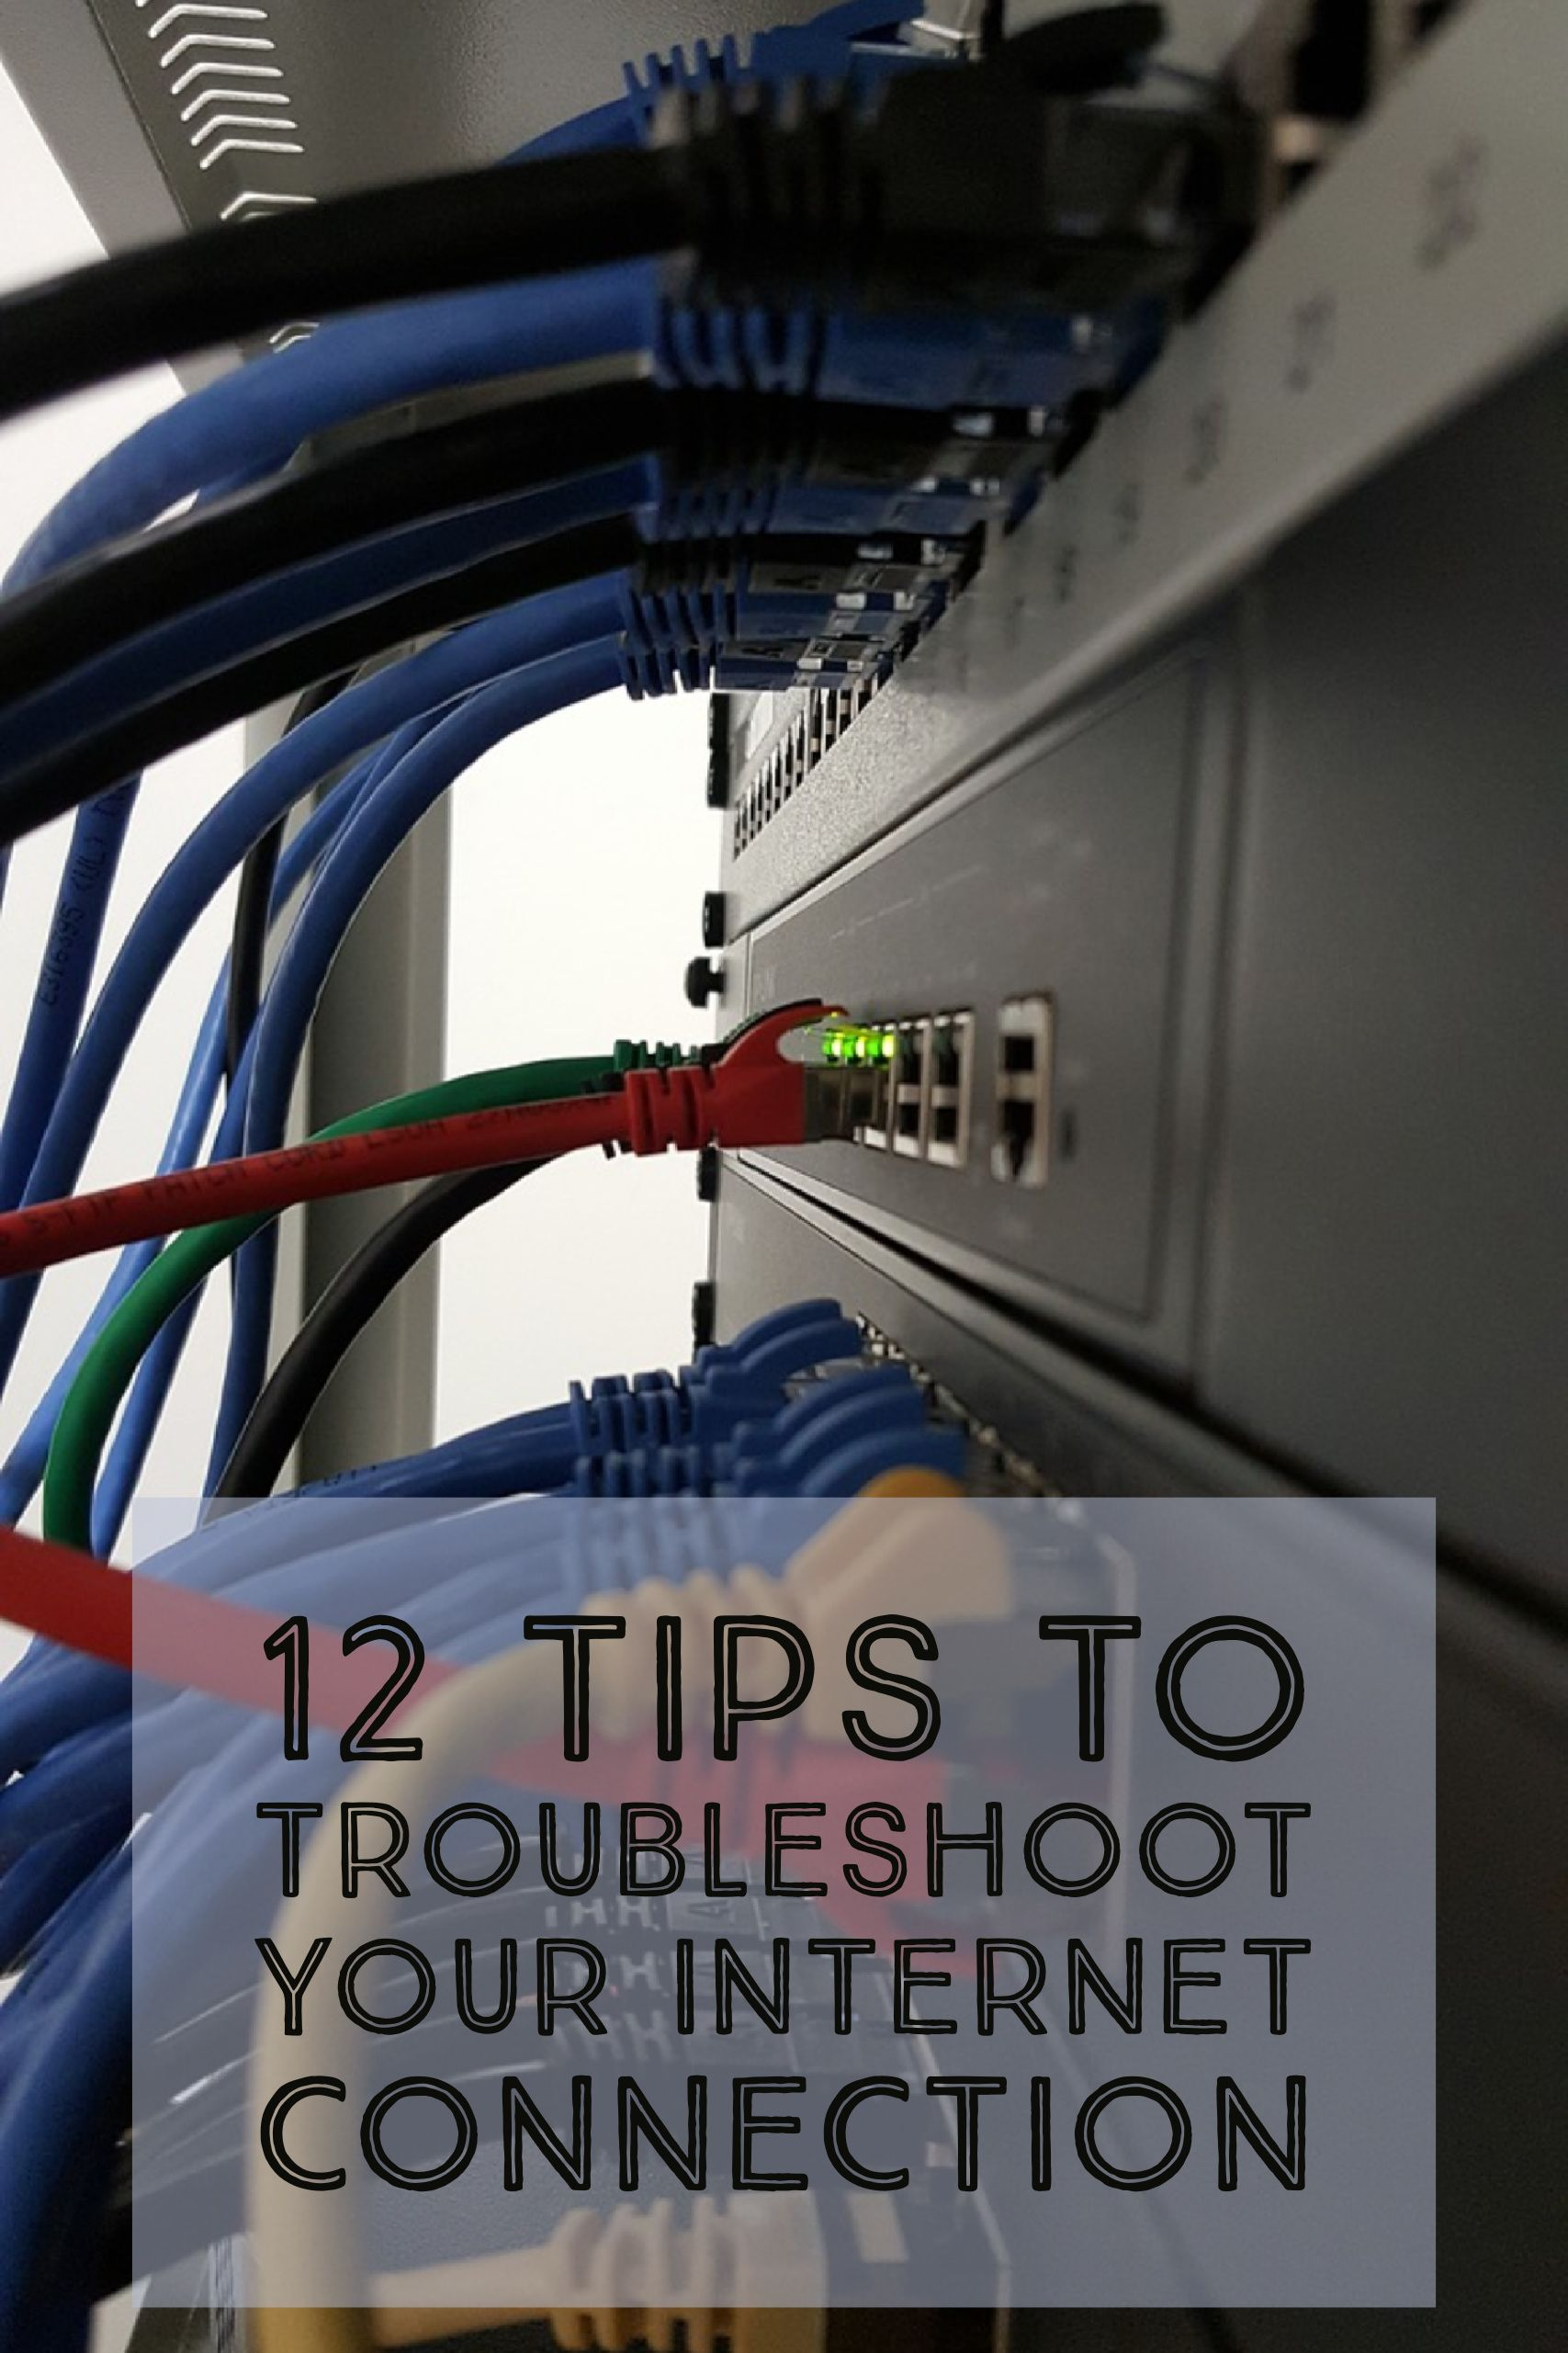 12 Tips to Troubleshoot Your Connection